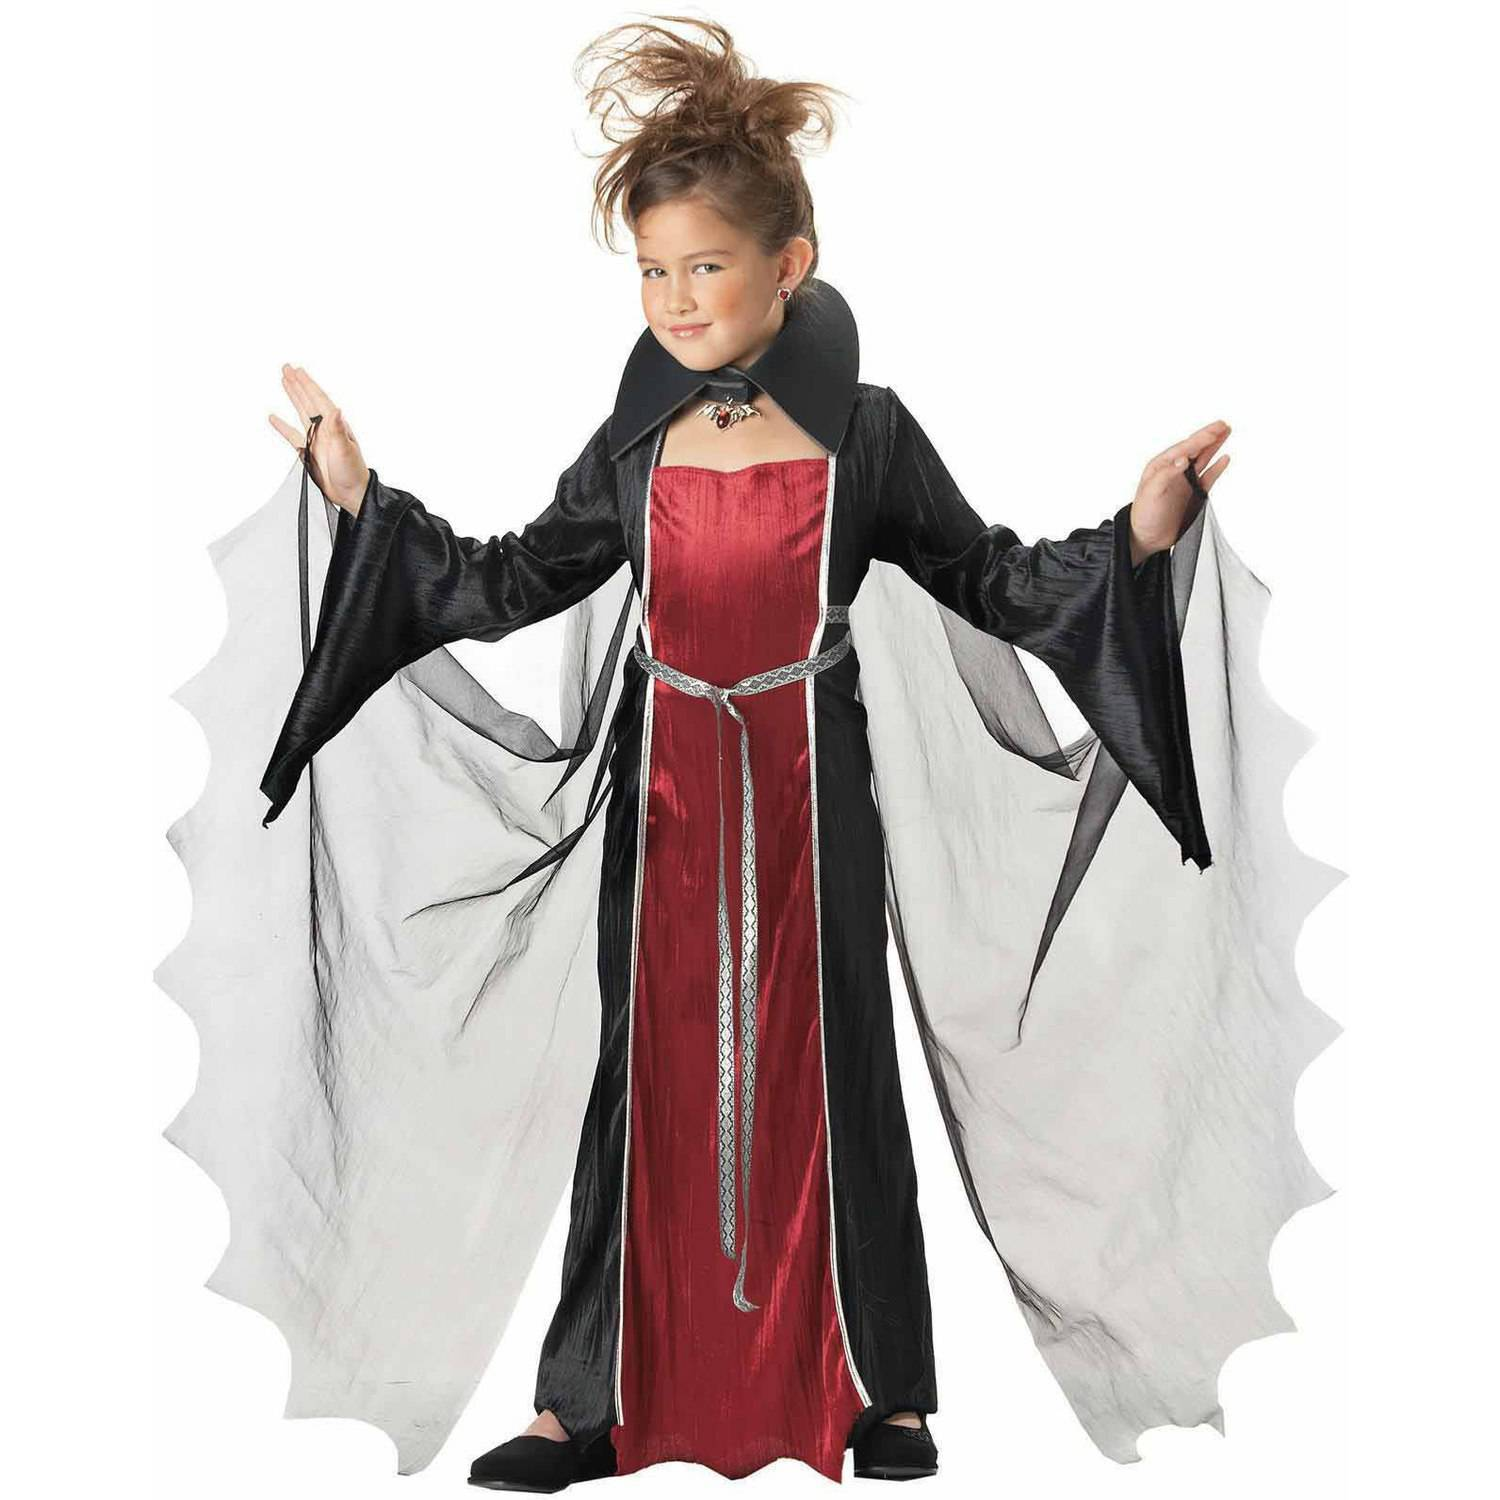 sc 1 st  Walmart & Purple/Orange Witch Girls Dress Halloween Costume - Walmart.com